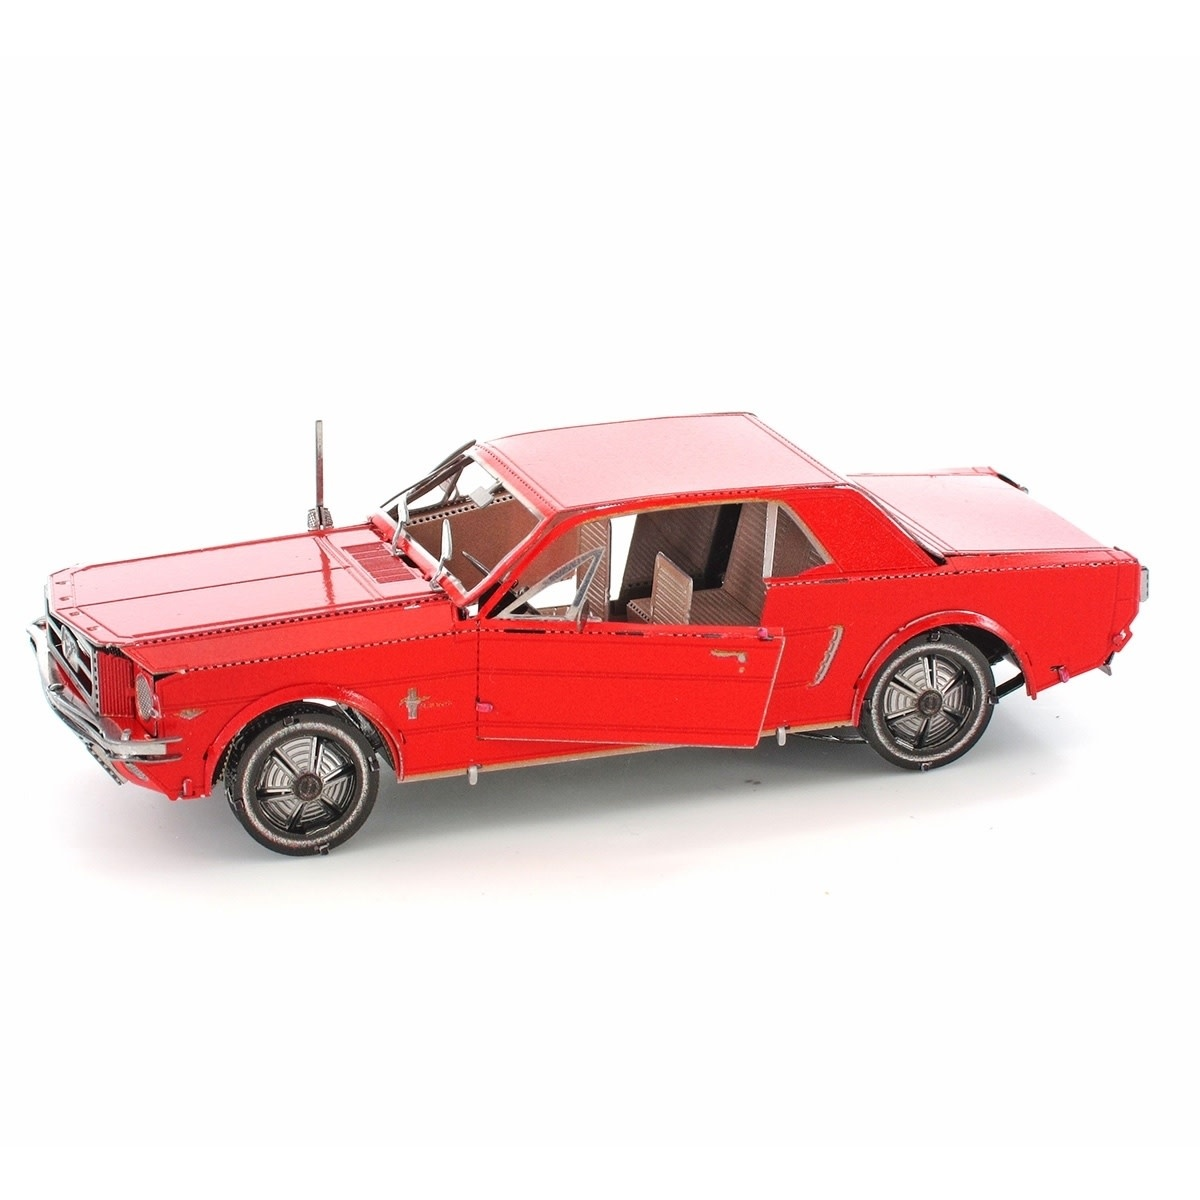 Fascinations Toys & Gifts Metal Model Kit 1965 Mustang Red